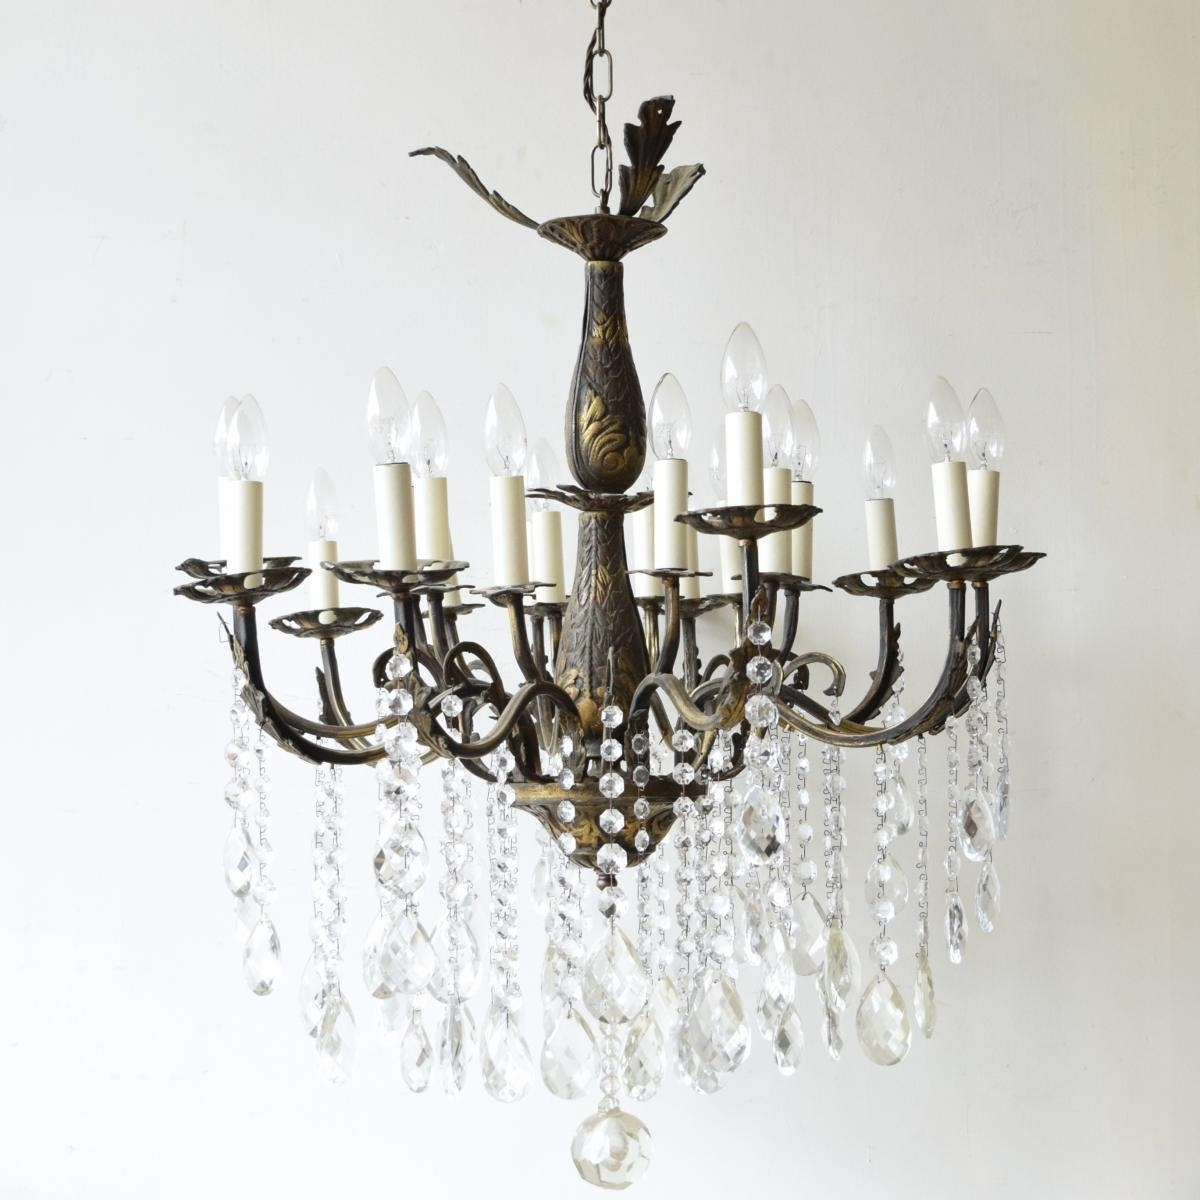 Well Known Large Vintage French 16 Light Brass Chandelier For Sale At Pamono With Vintage French Chandeliers (View 13 of 15)